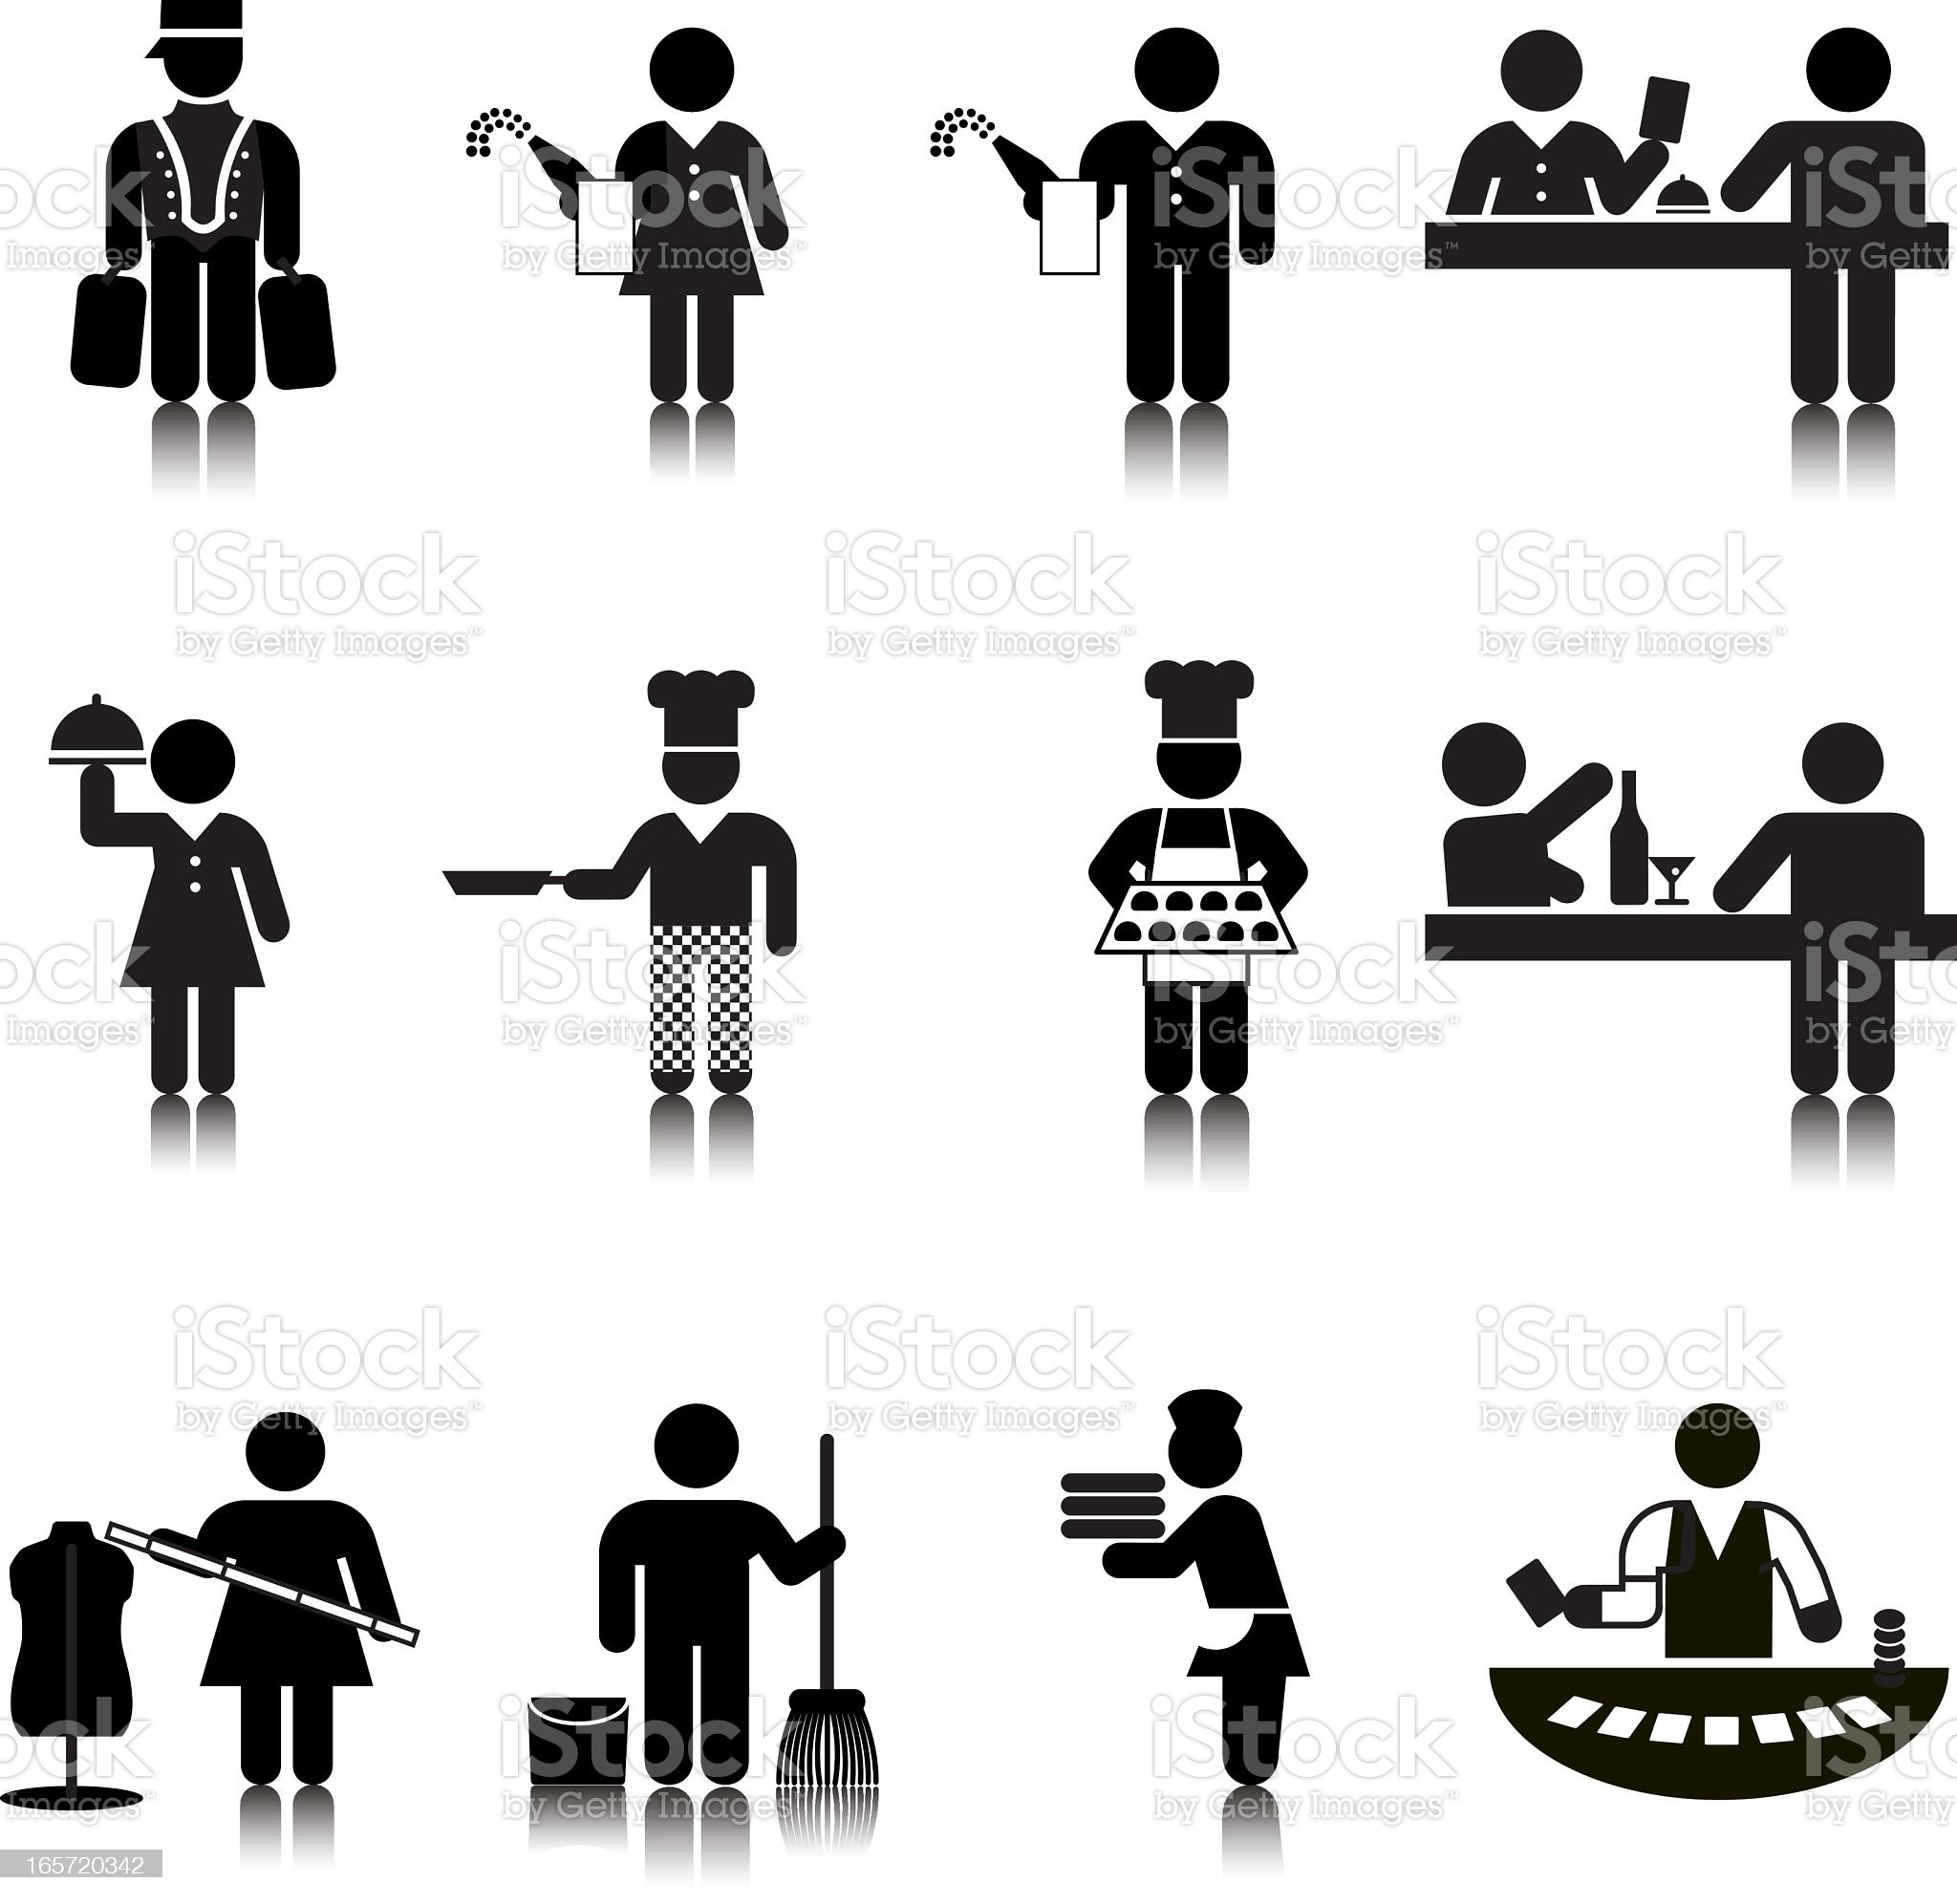 Compact Concepts: Hotel Services royalty-free stock vector art